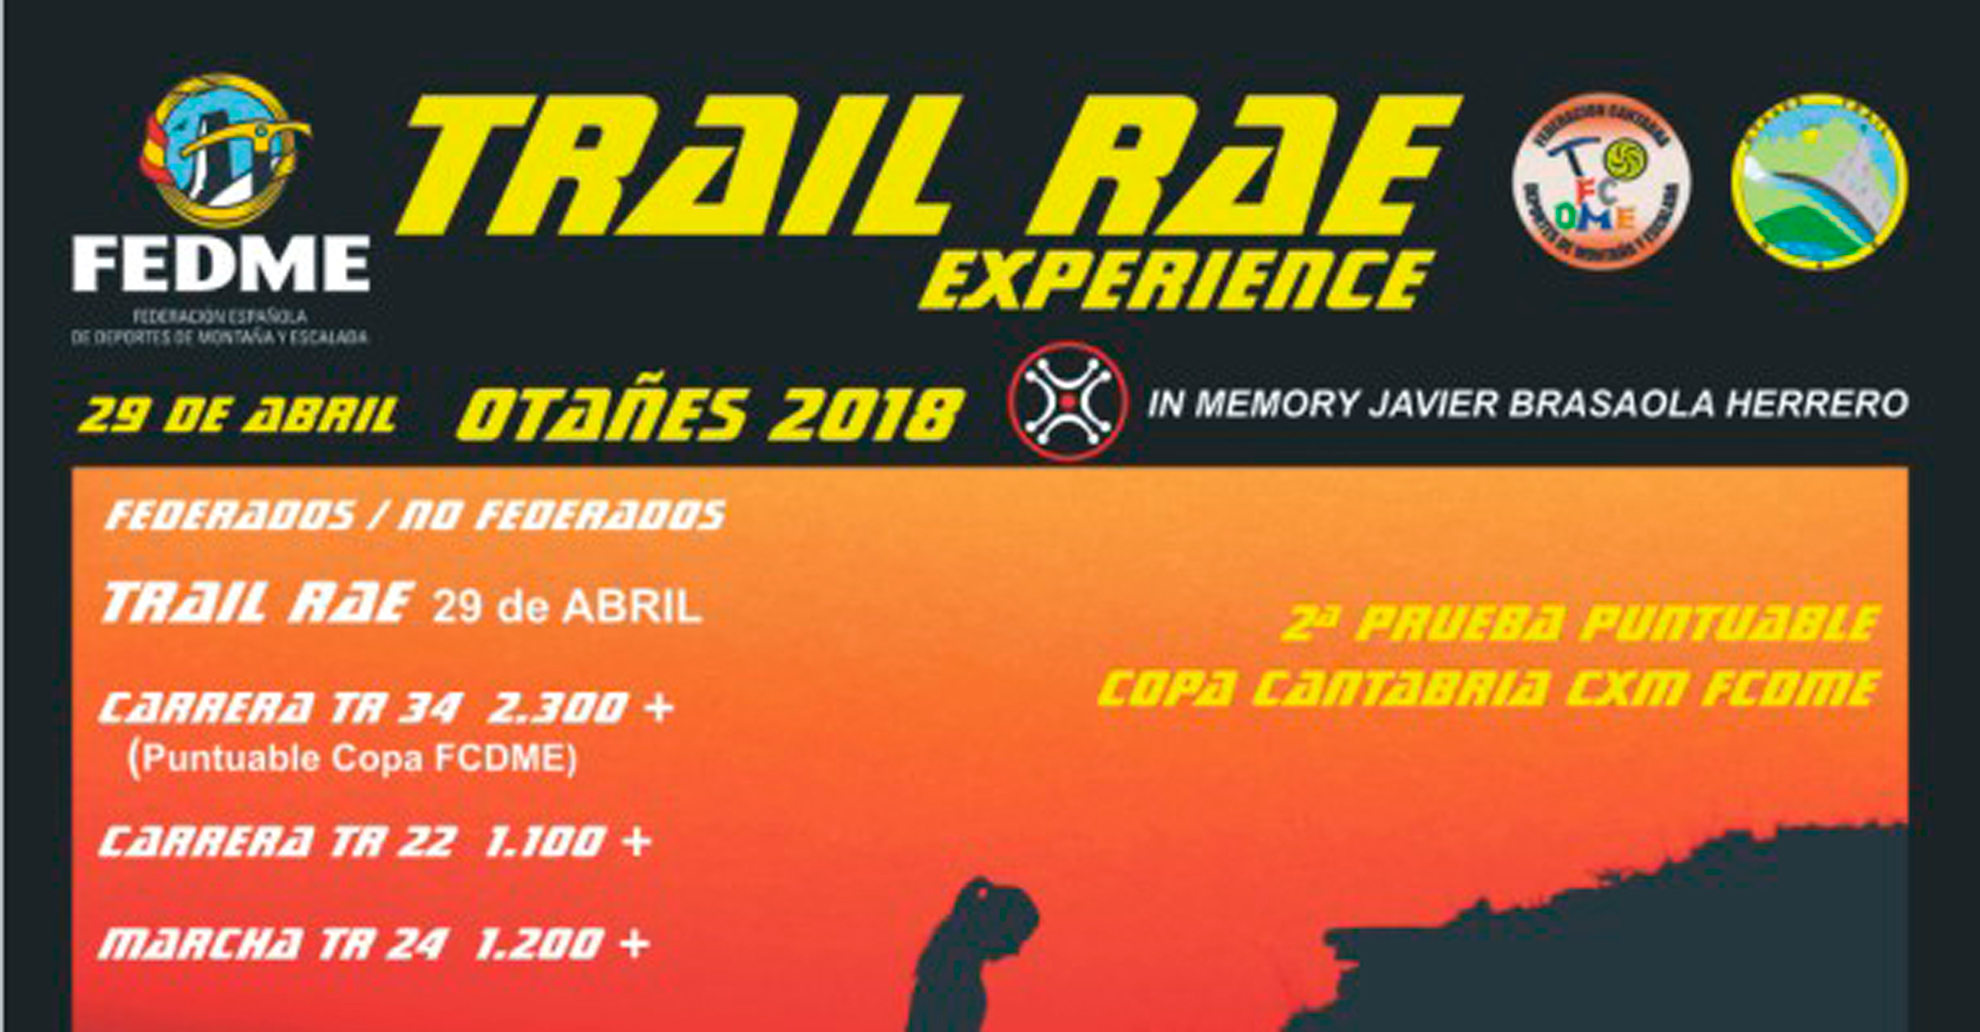 CARTEL-CARRERA-trail_rae_2018---copia